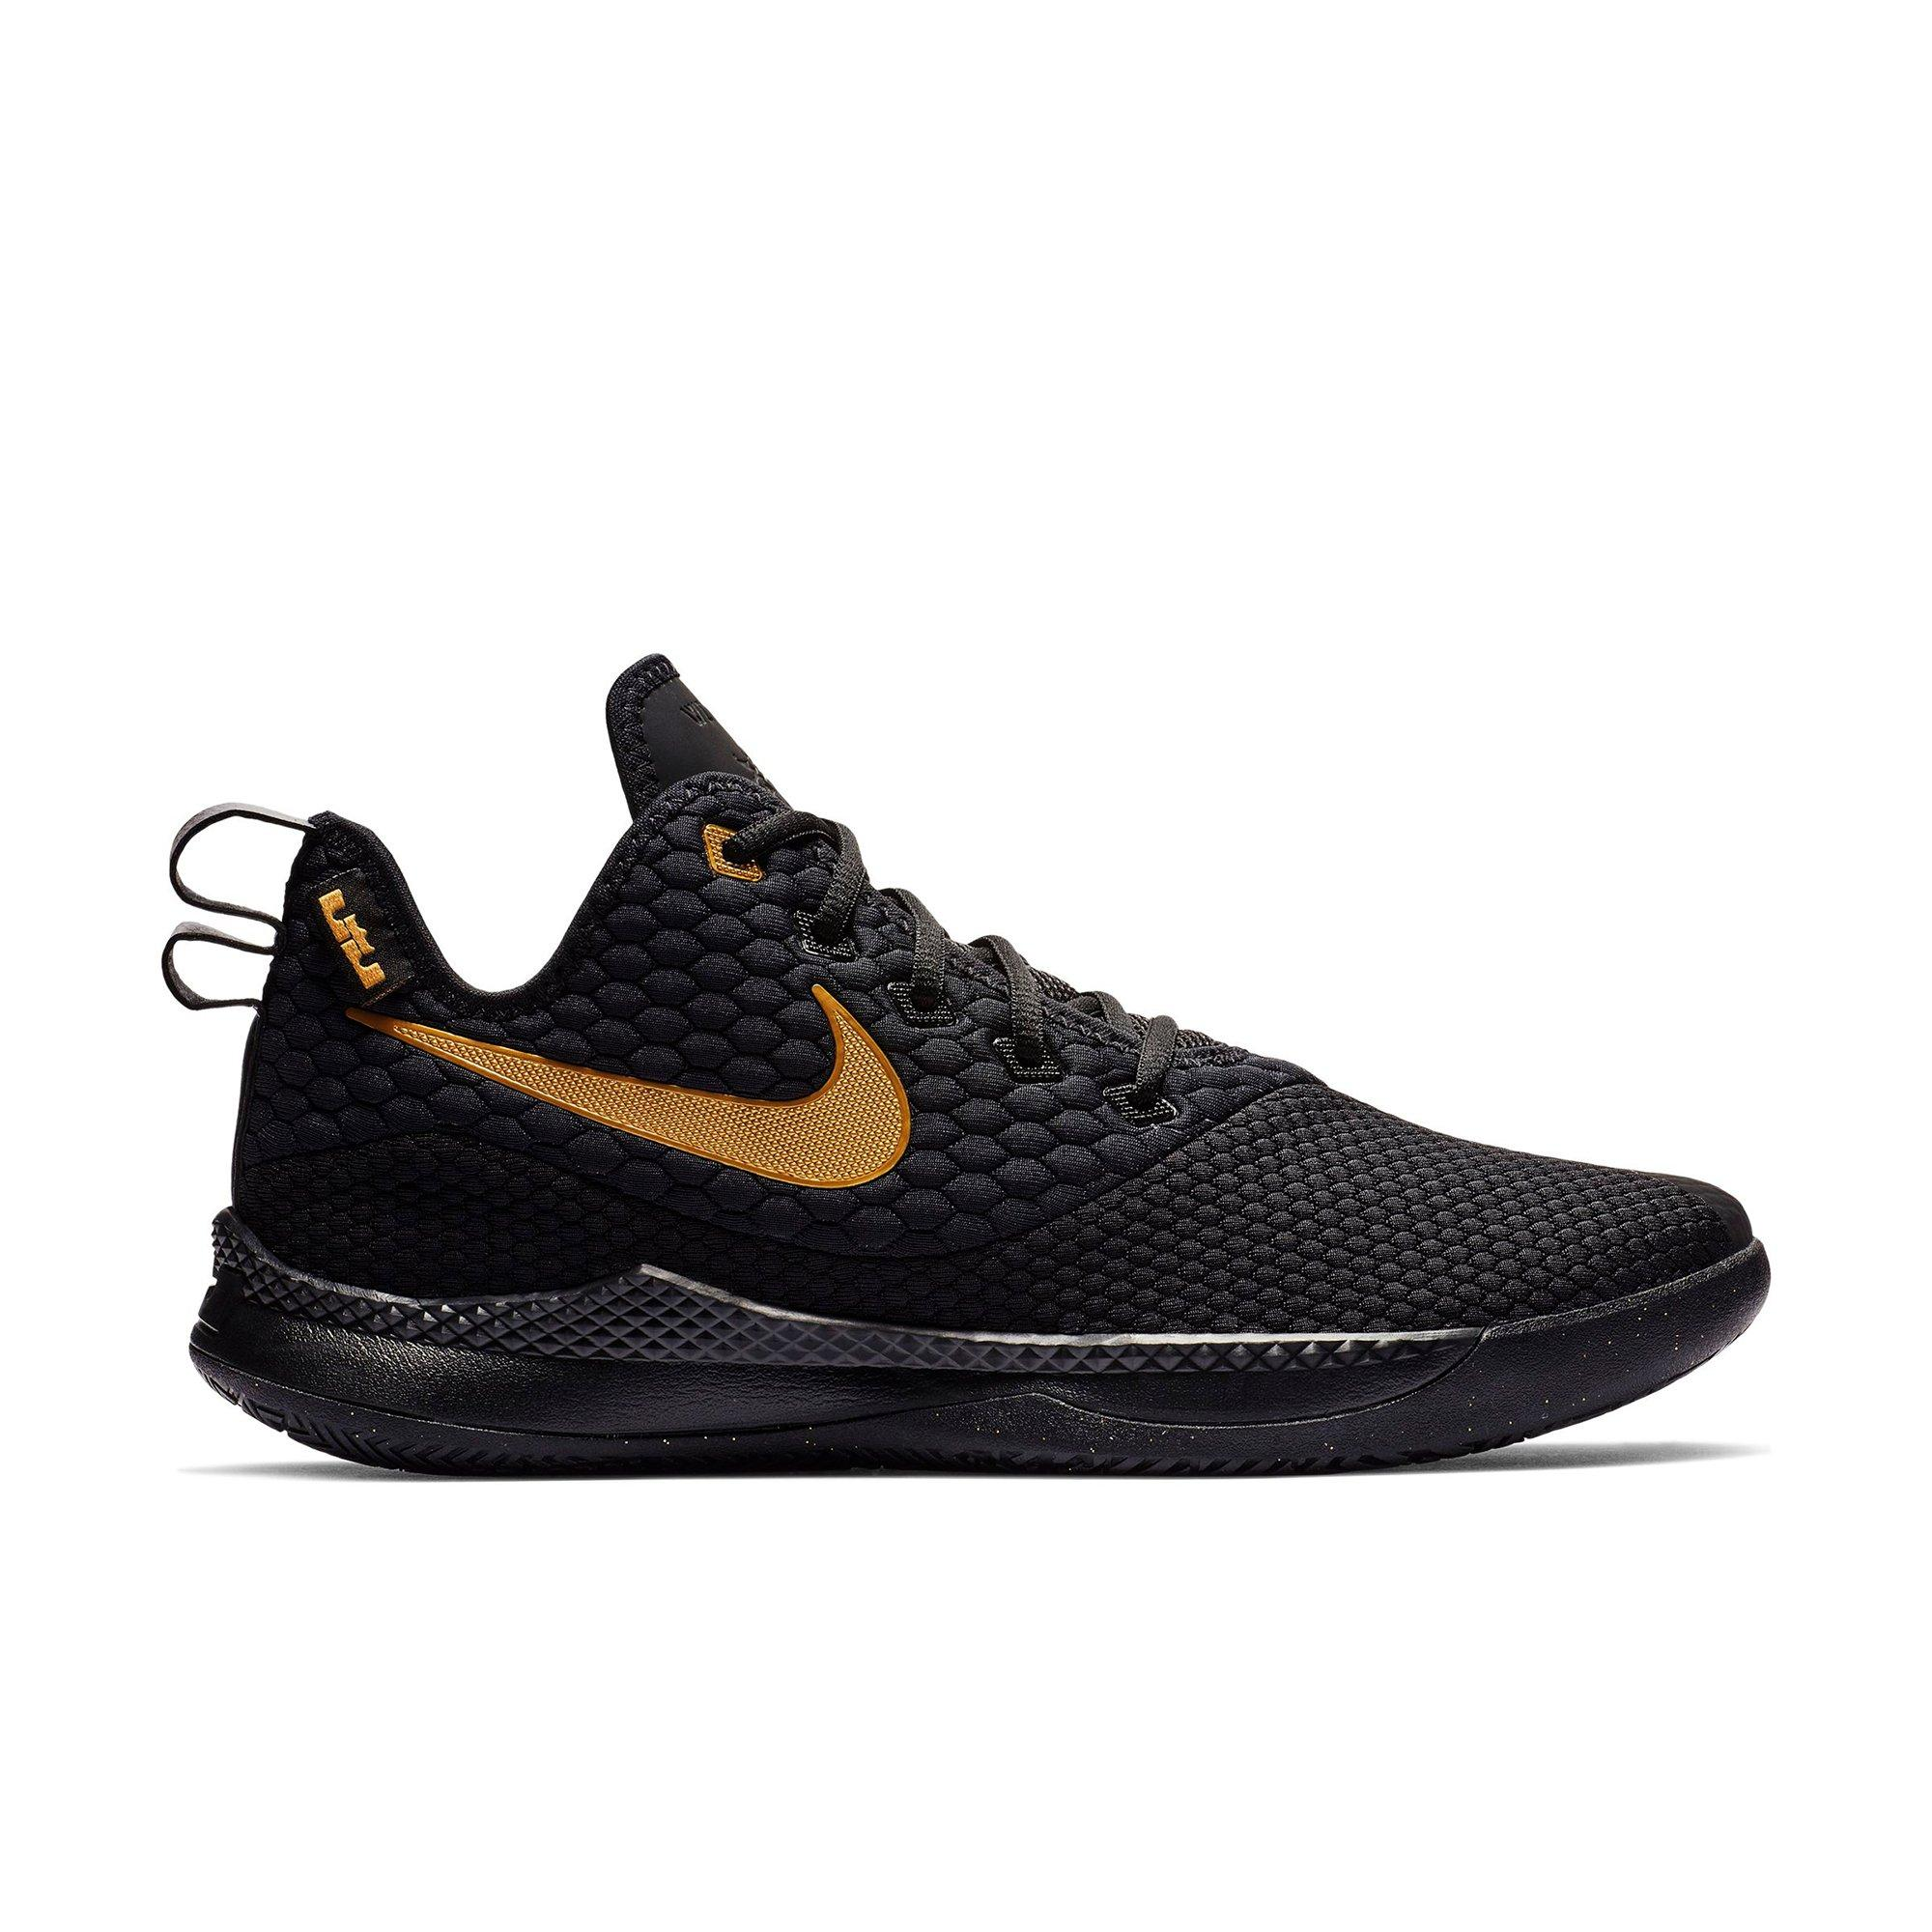 Nike LeBron Witness 3 Black Metallic Gold Mens Basketball